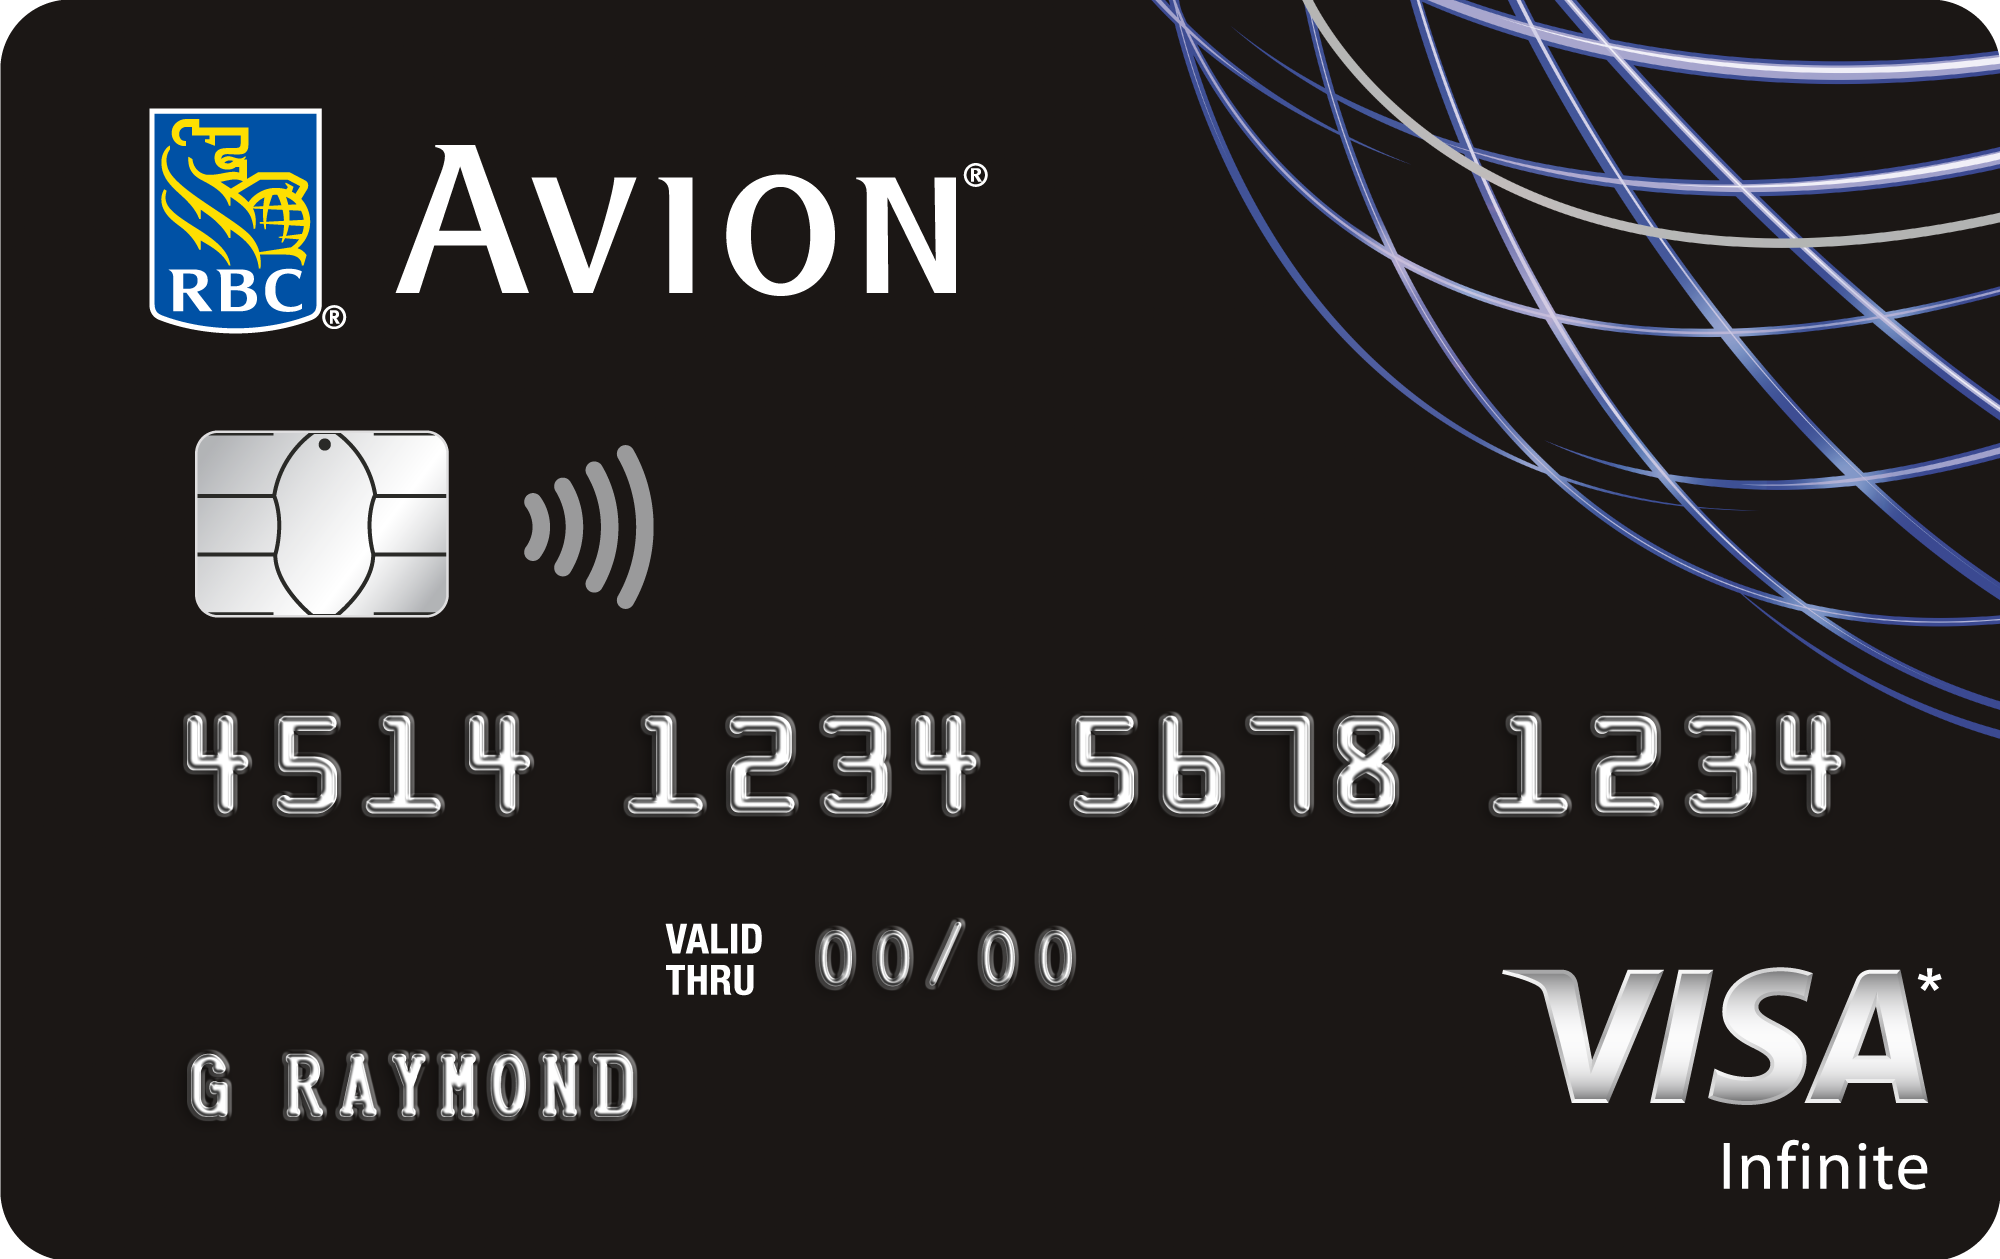 How To Maximize Value Out Of The Rbc Avion Airline Award Chart